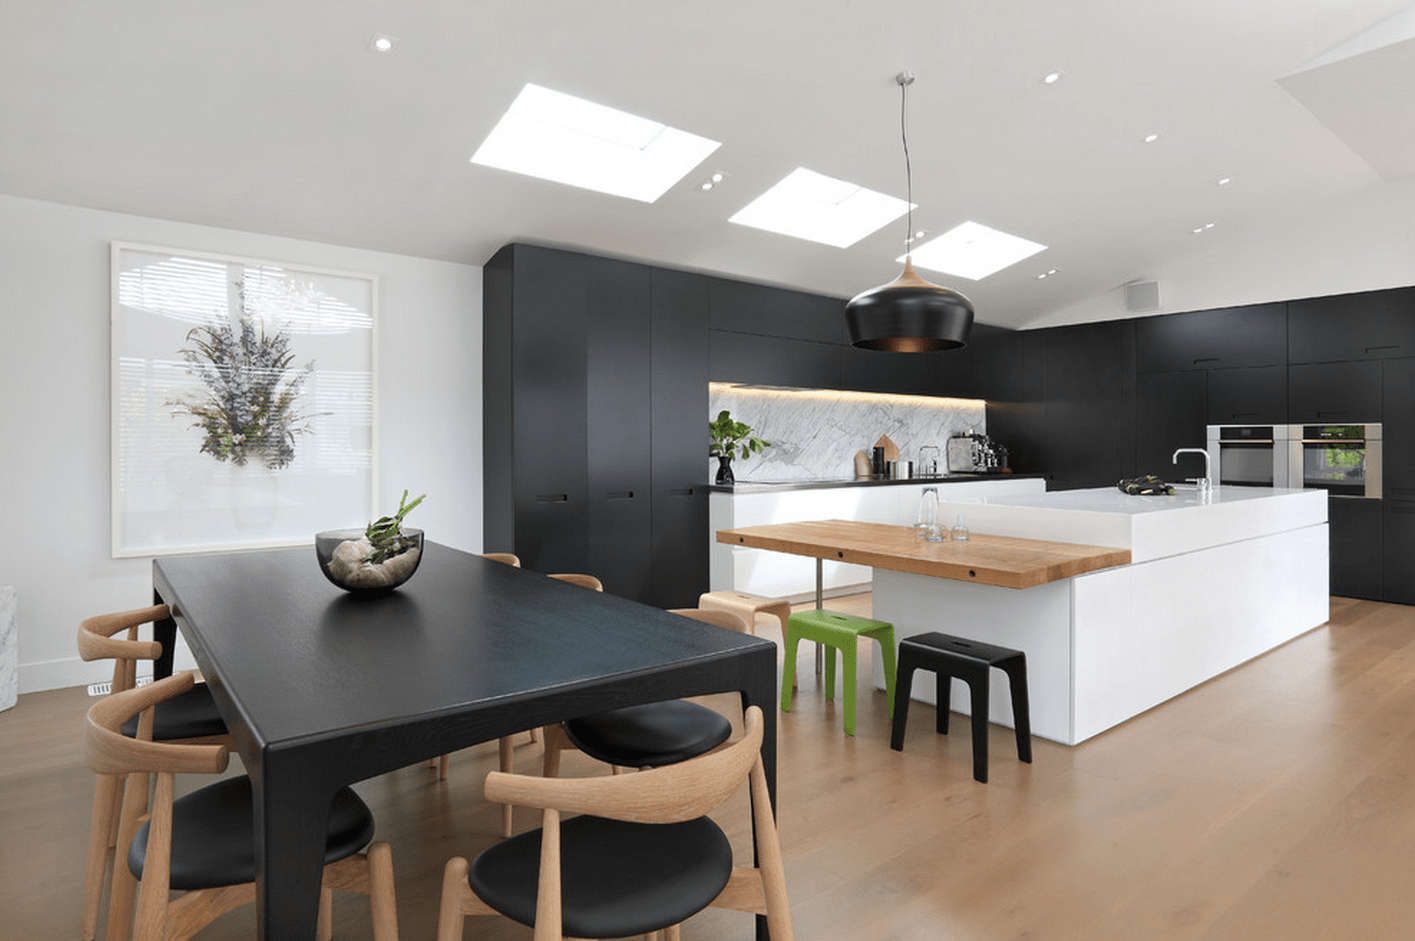 Black Furniture: Interior Design Photo Ideas. Nice hi-tech eco style mix in the large kitchen with light wooden and black intertwining